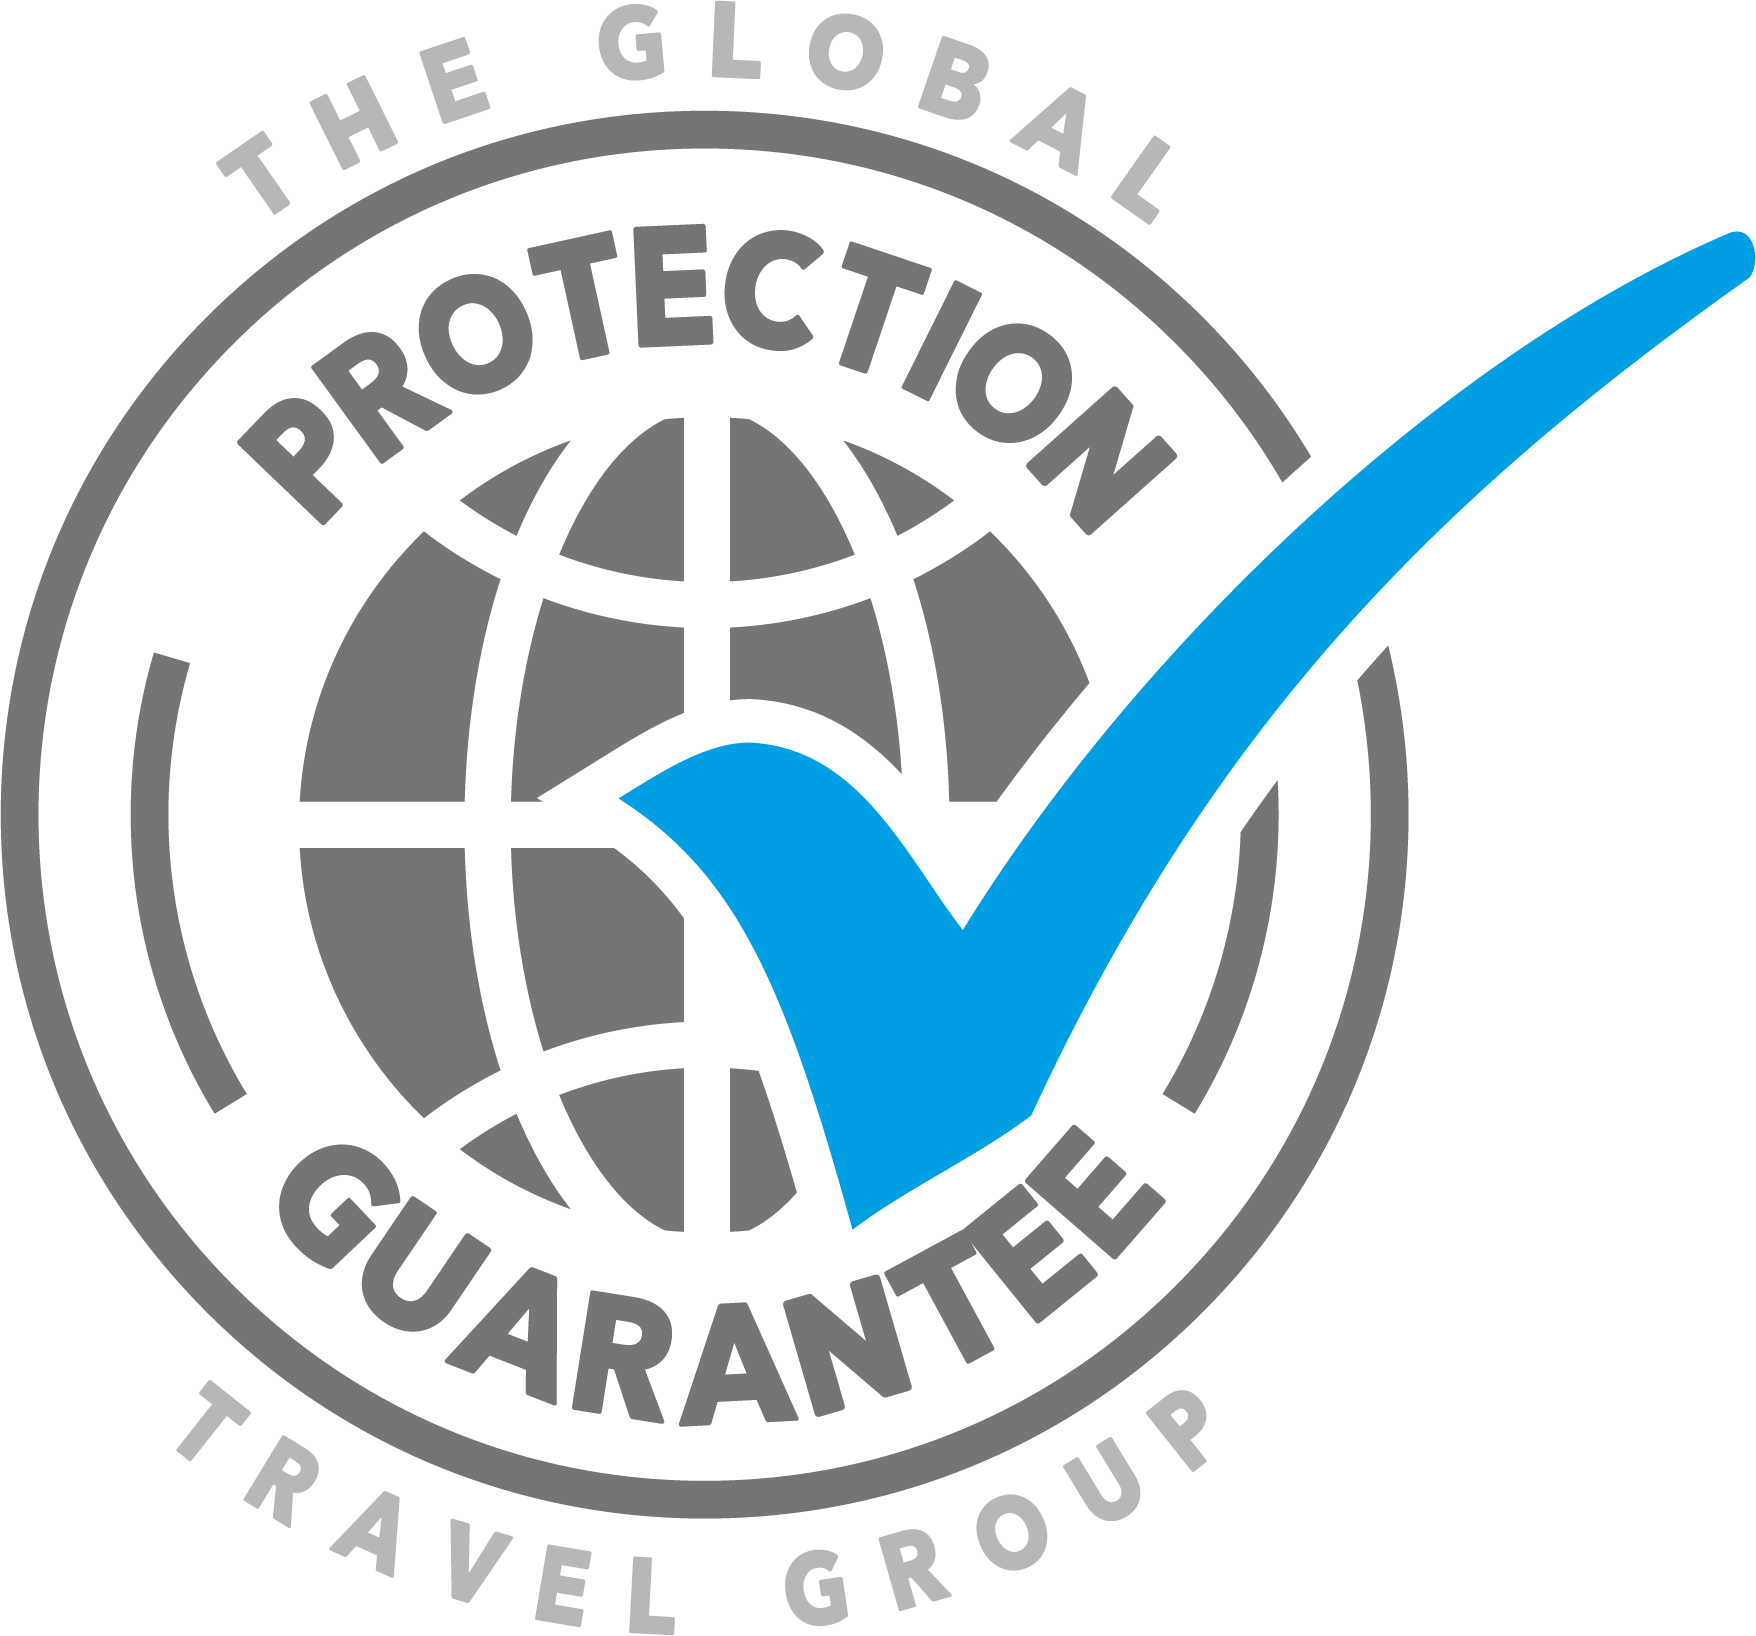 Global Travel Group Protection Guarantee